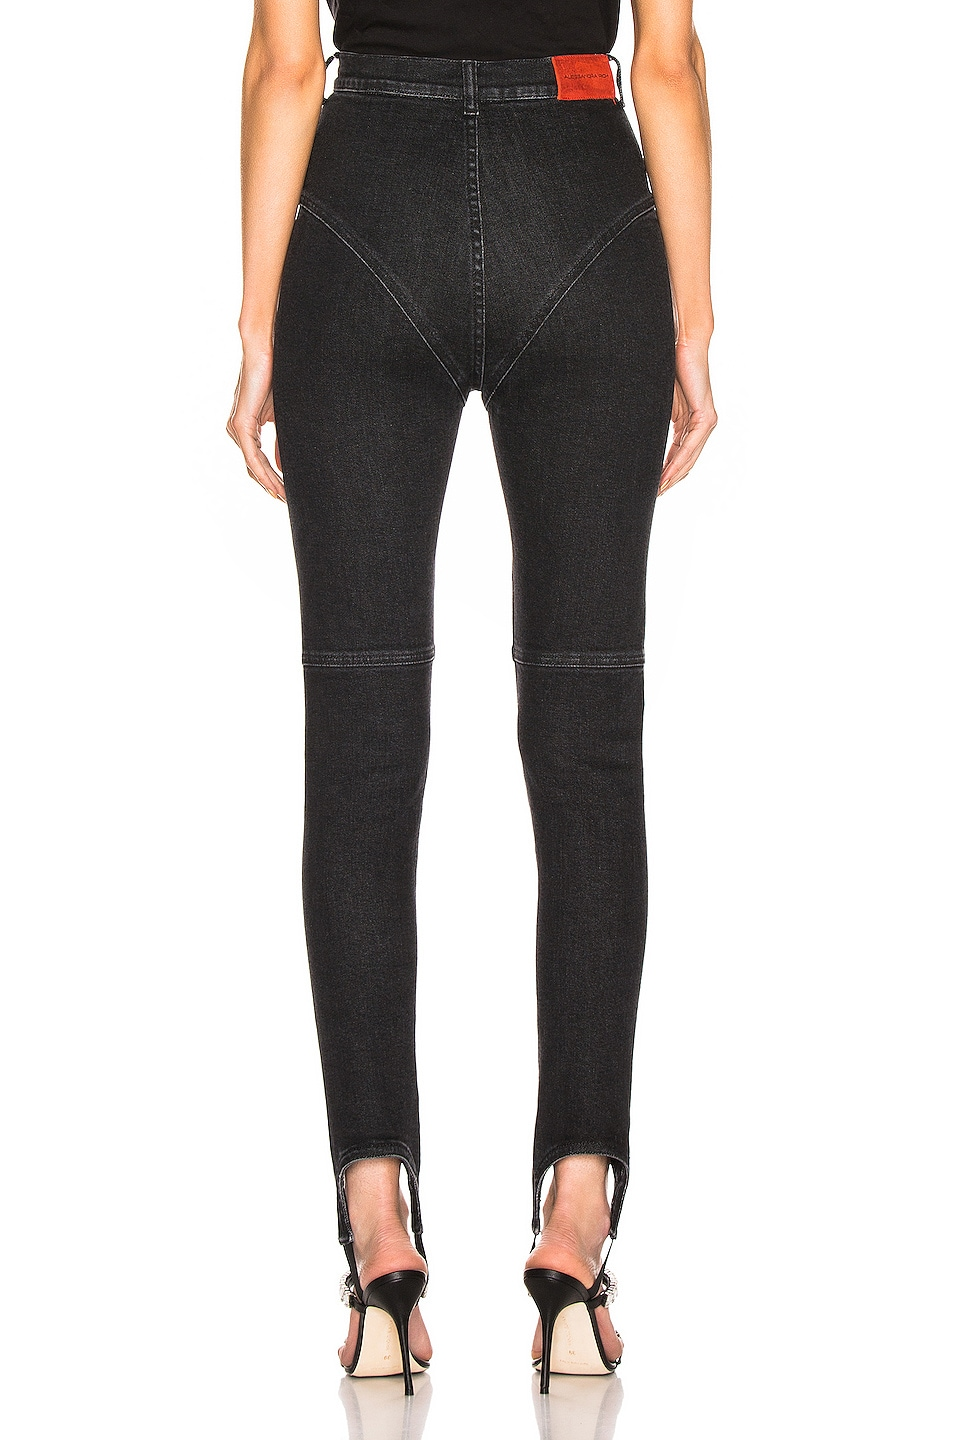 Image 3 of Alessandra Rich High Waisted Crystal Button Stirrup Jean in Black